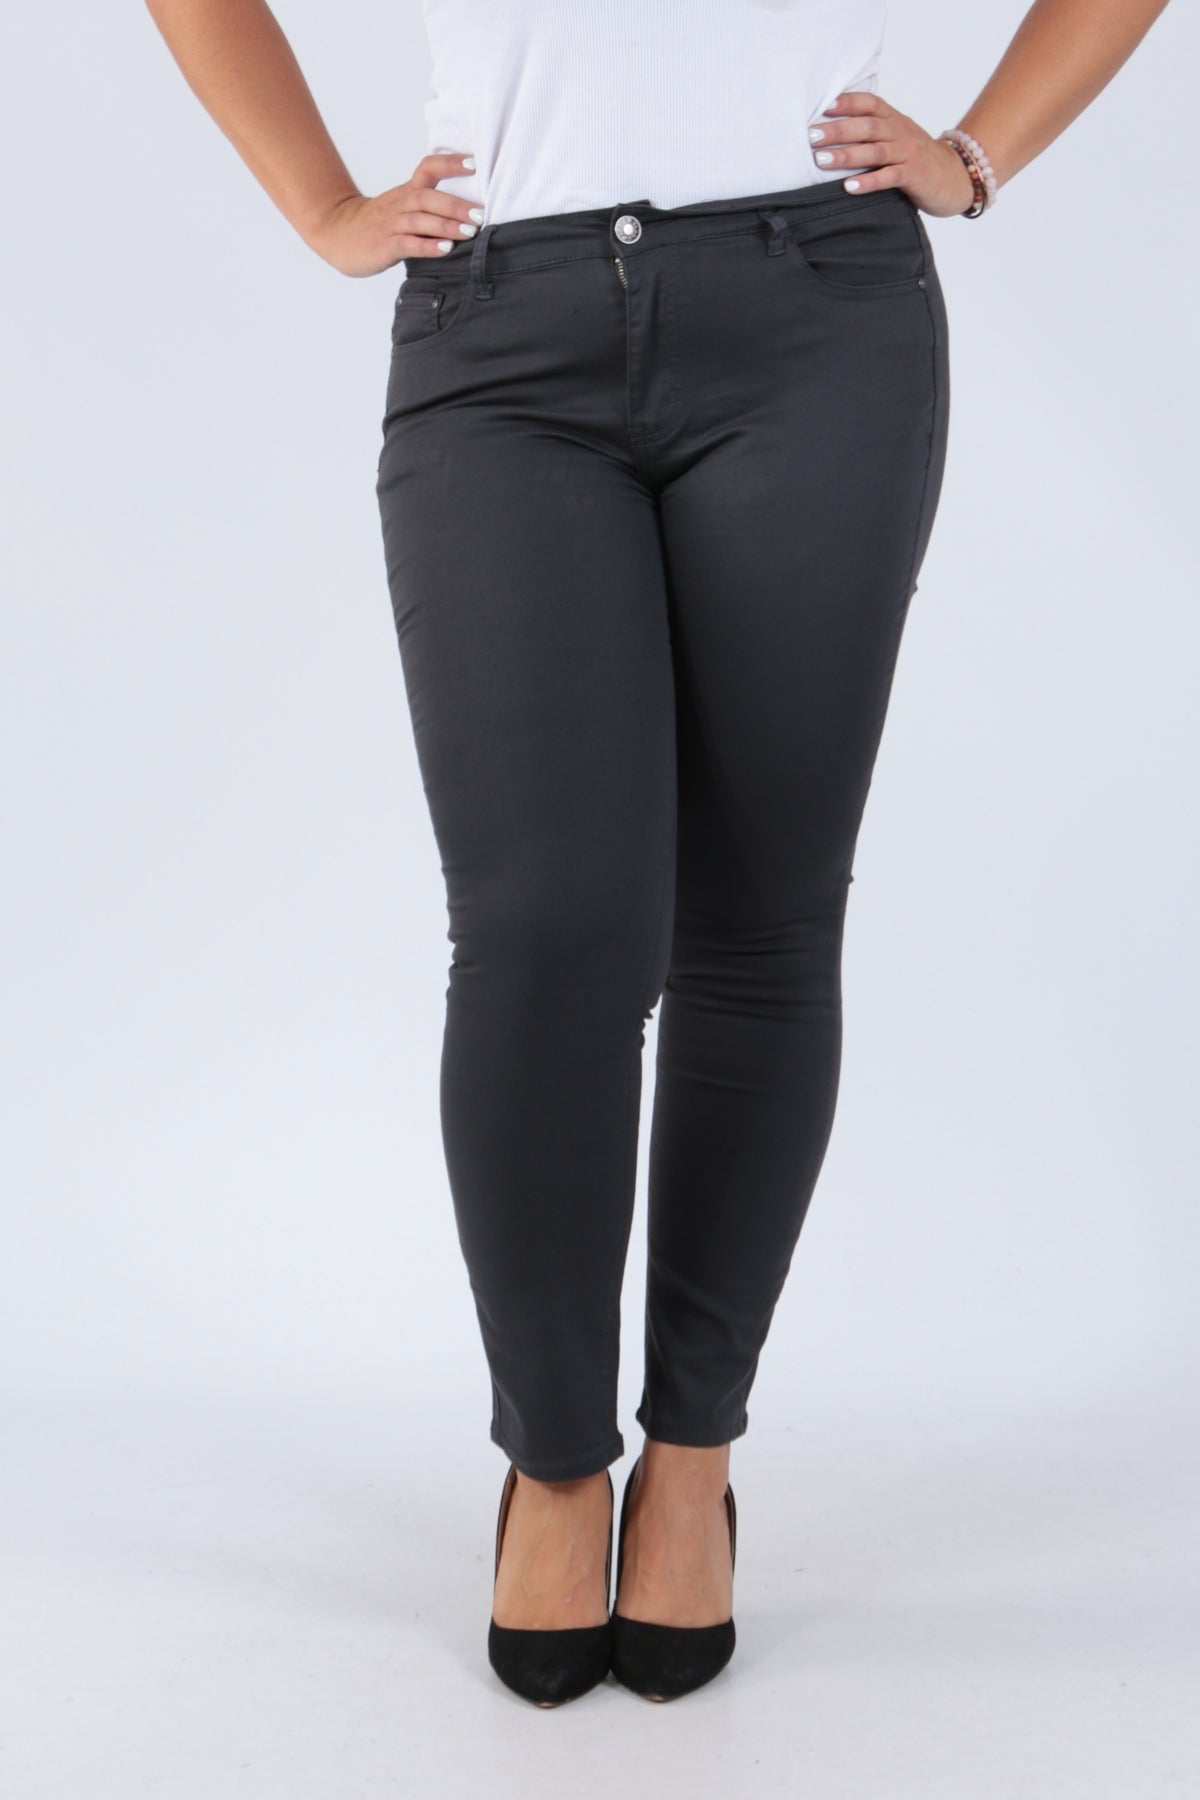 Wholesale Grey Straight Cut Jeggings